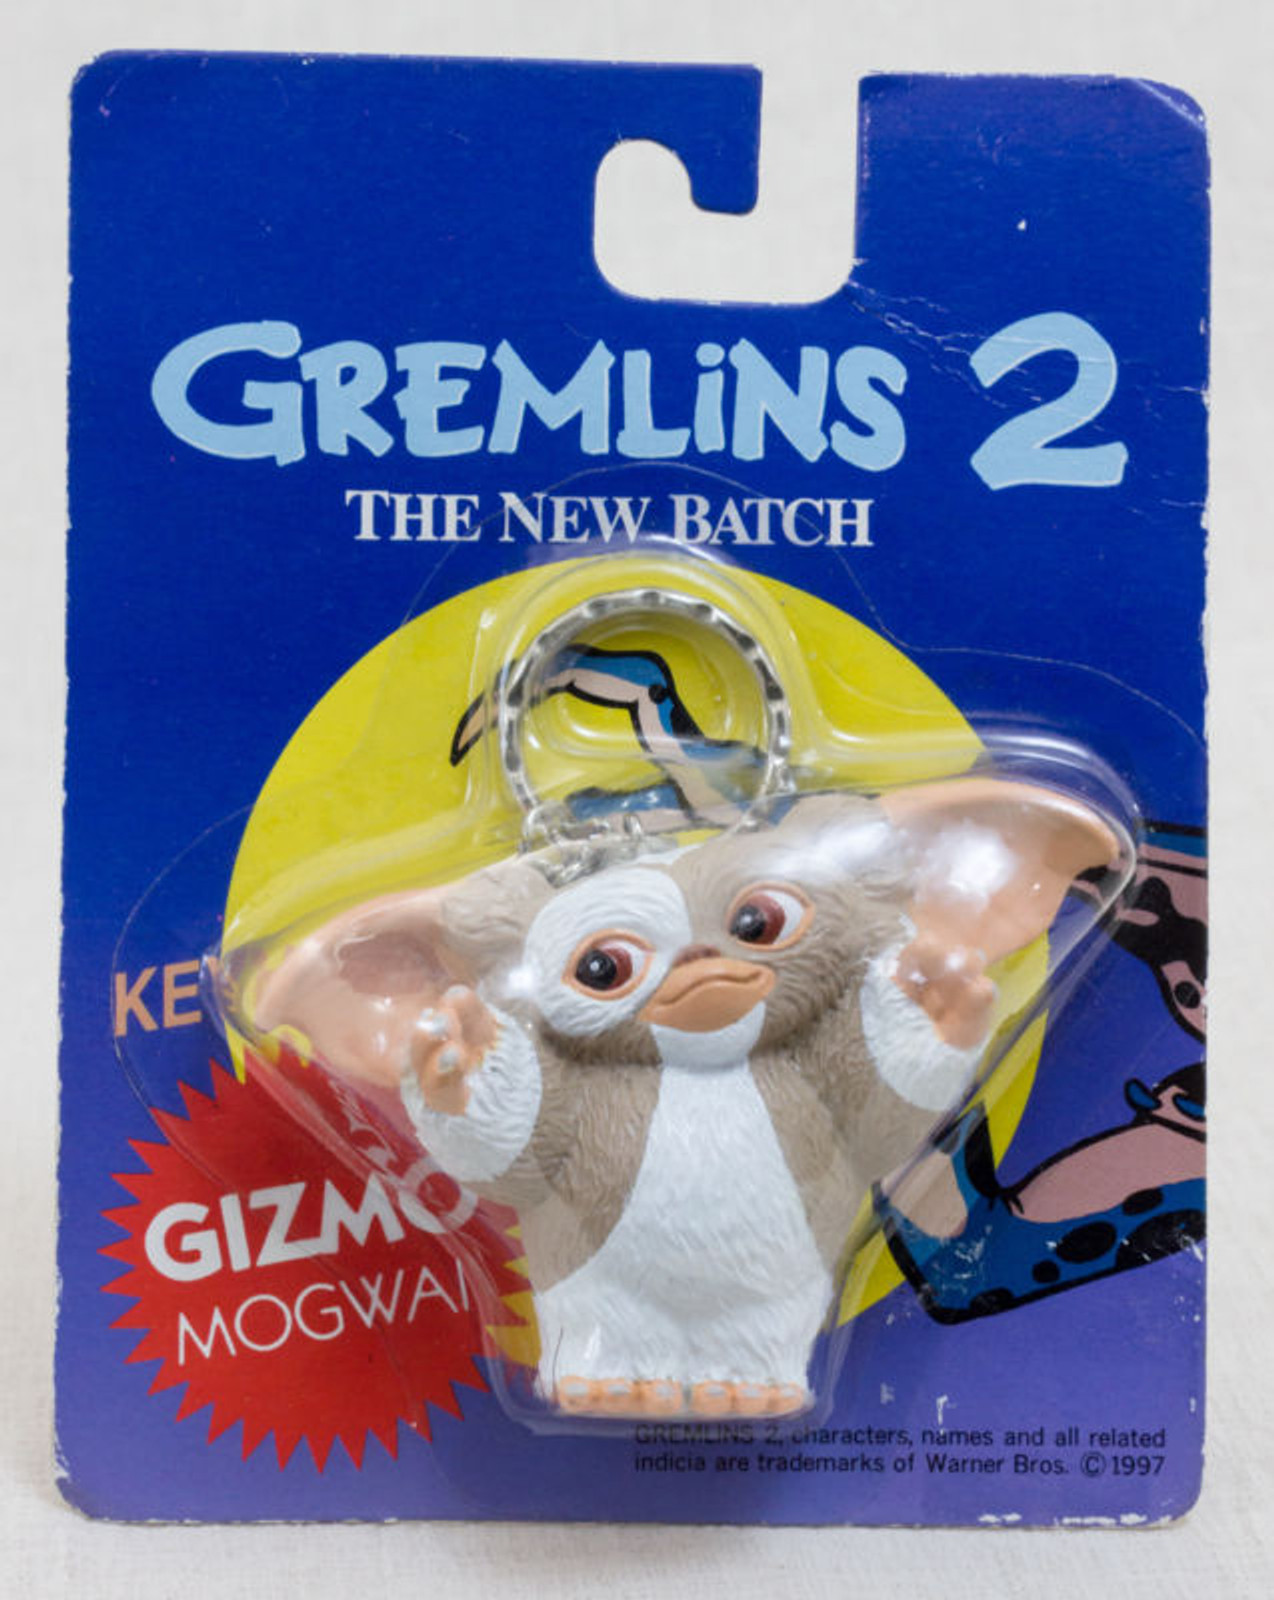 Gremlins 2 The New Batch Gizmo Figure Key Chain Jun Planning JAPAN